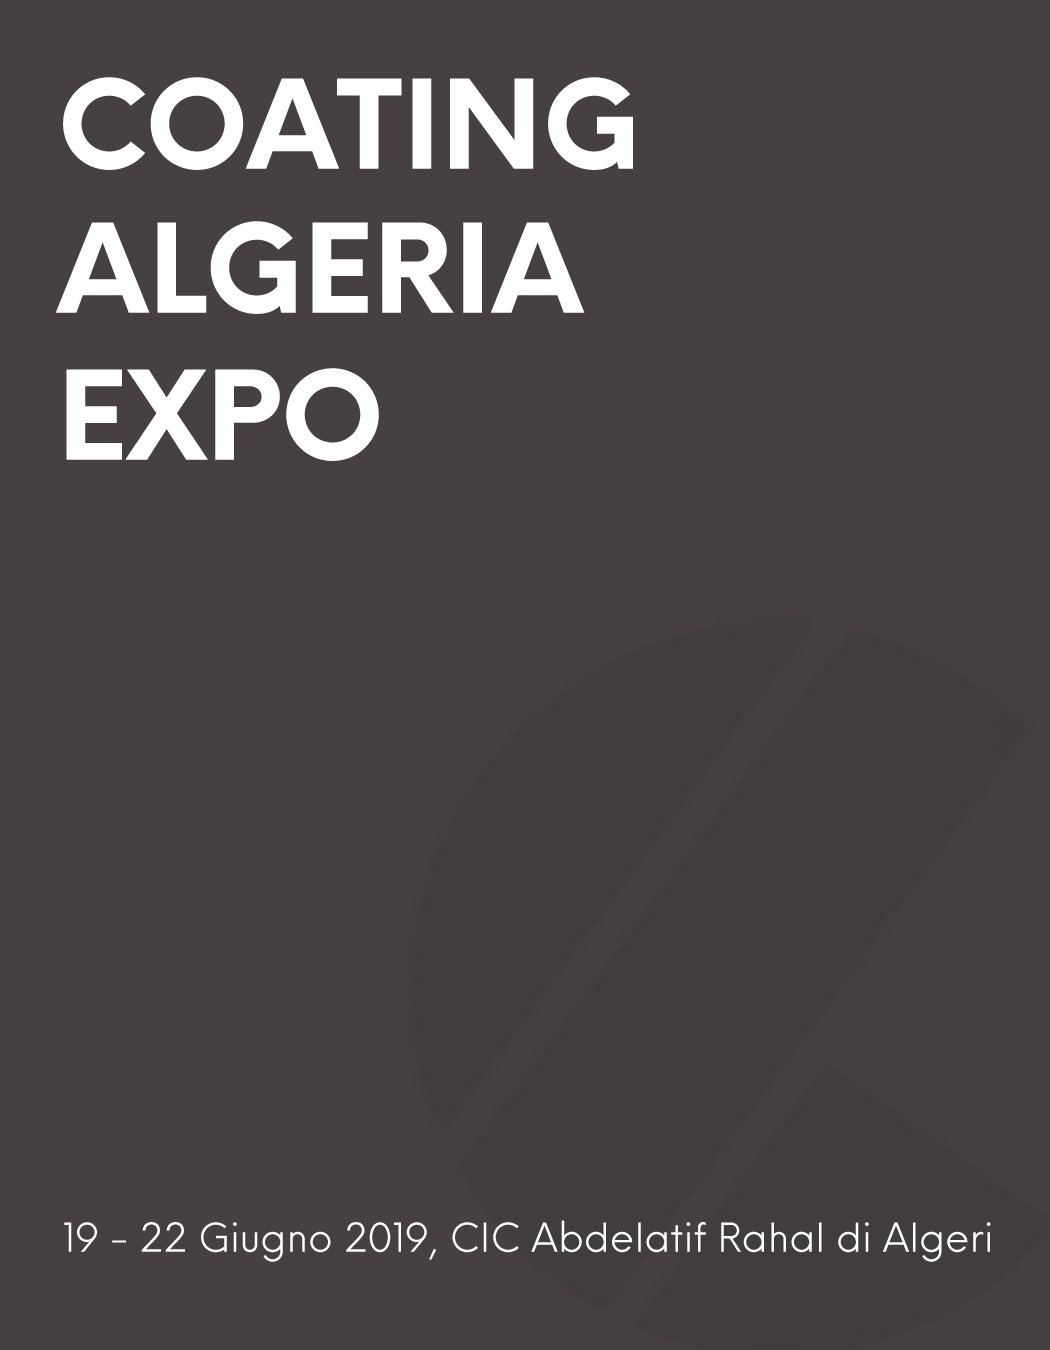 coating algeria 2019 immea dosatrici fiera